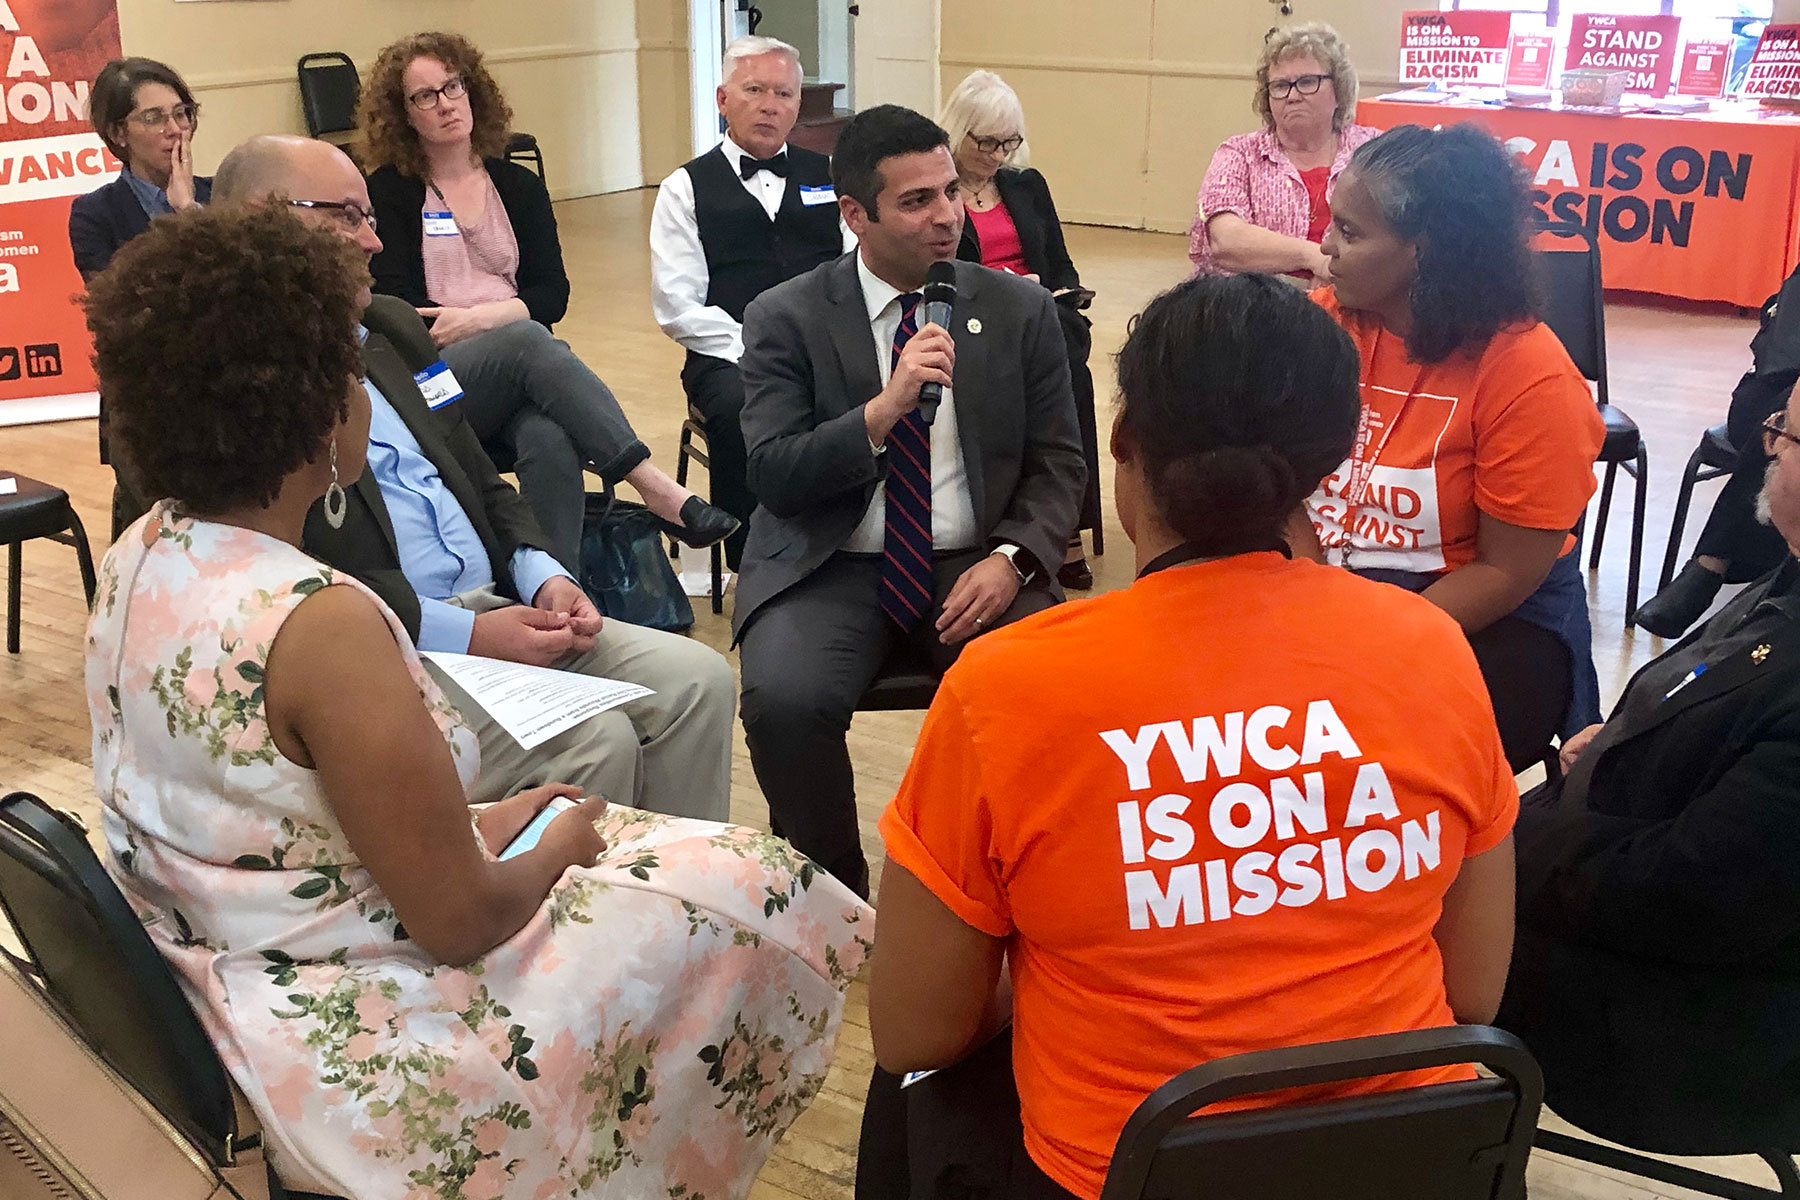 YWCA Glendale Stand Against Racism Event 2019